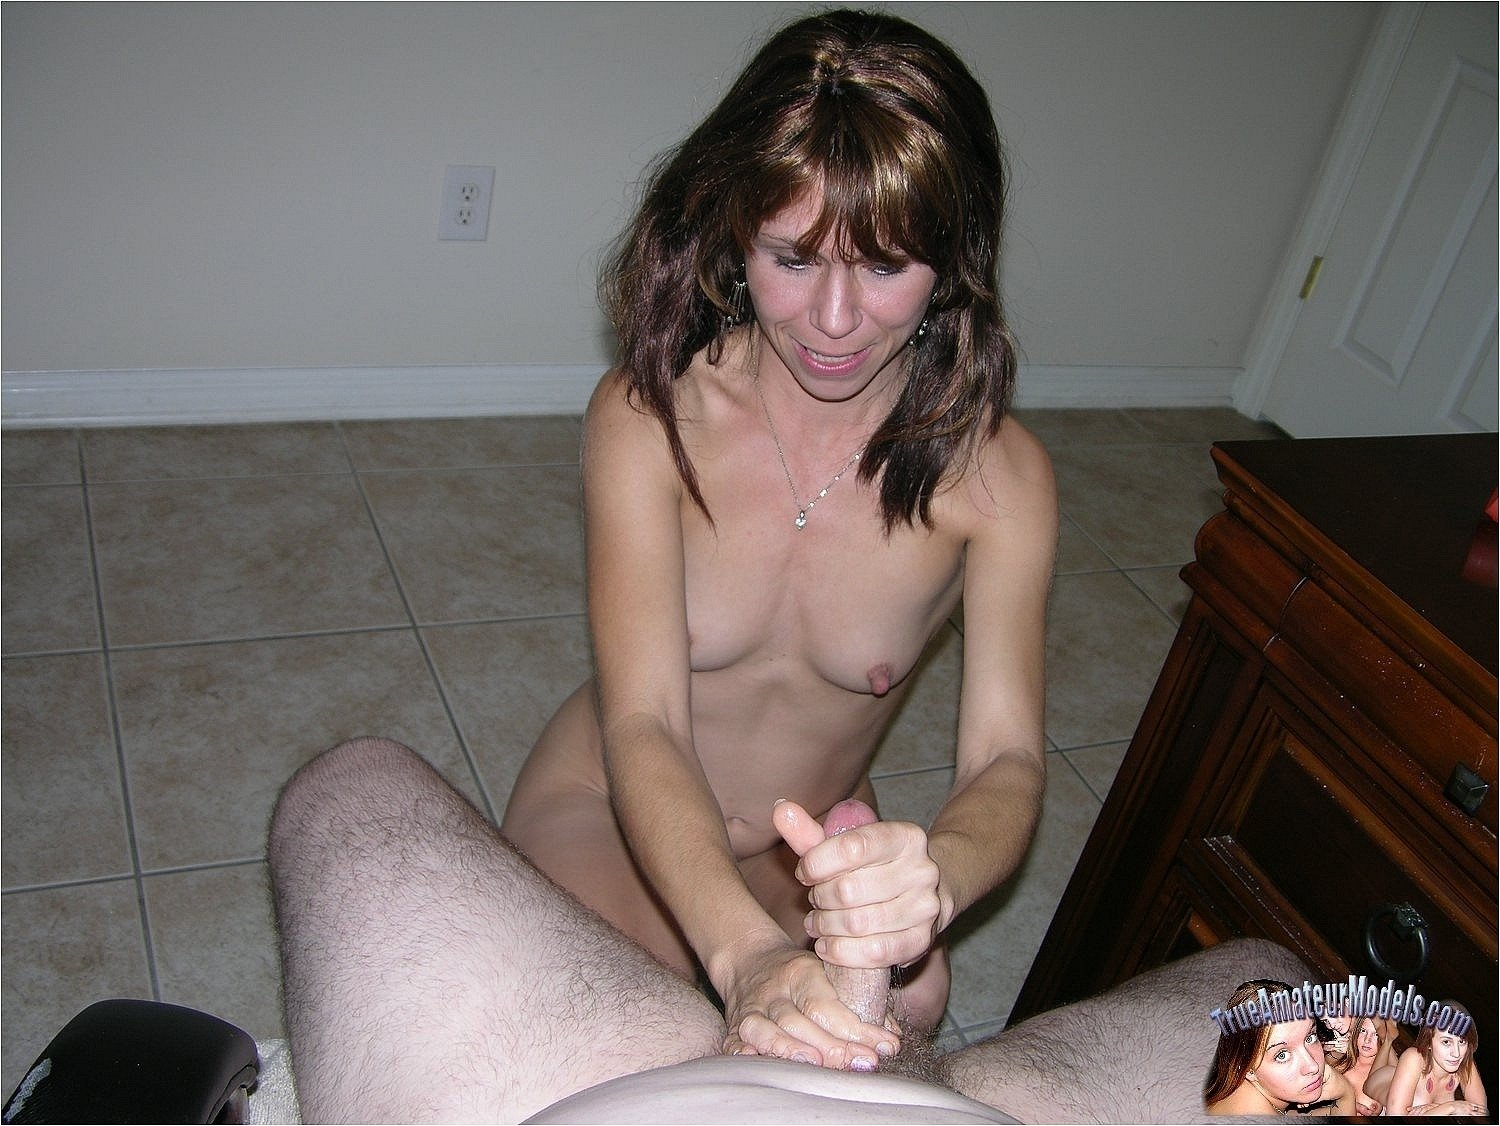 hotwife porn tumblr Asse stretto Abused drunk whores